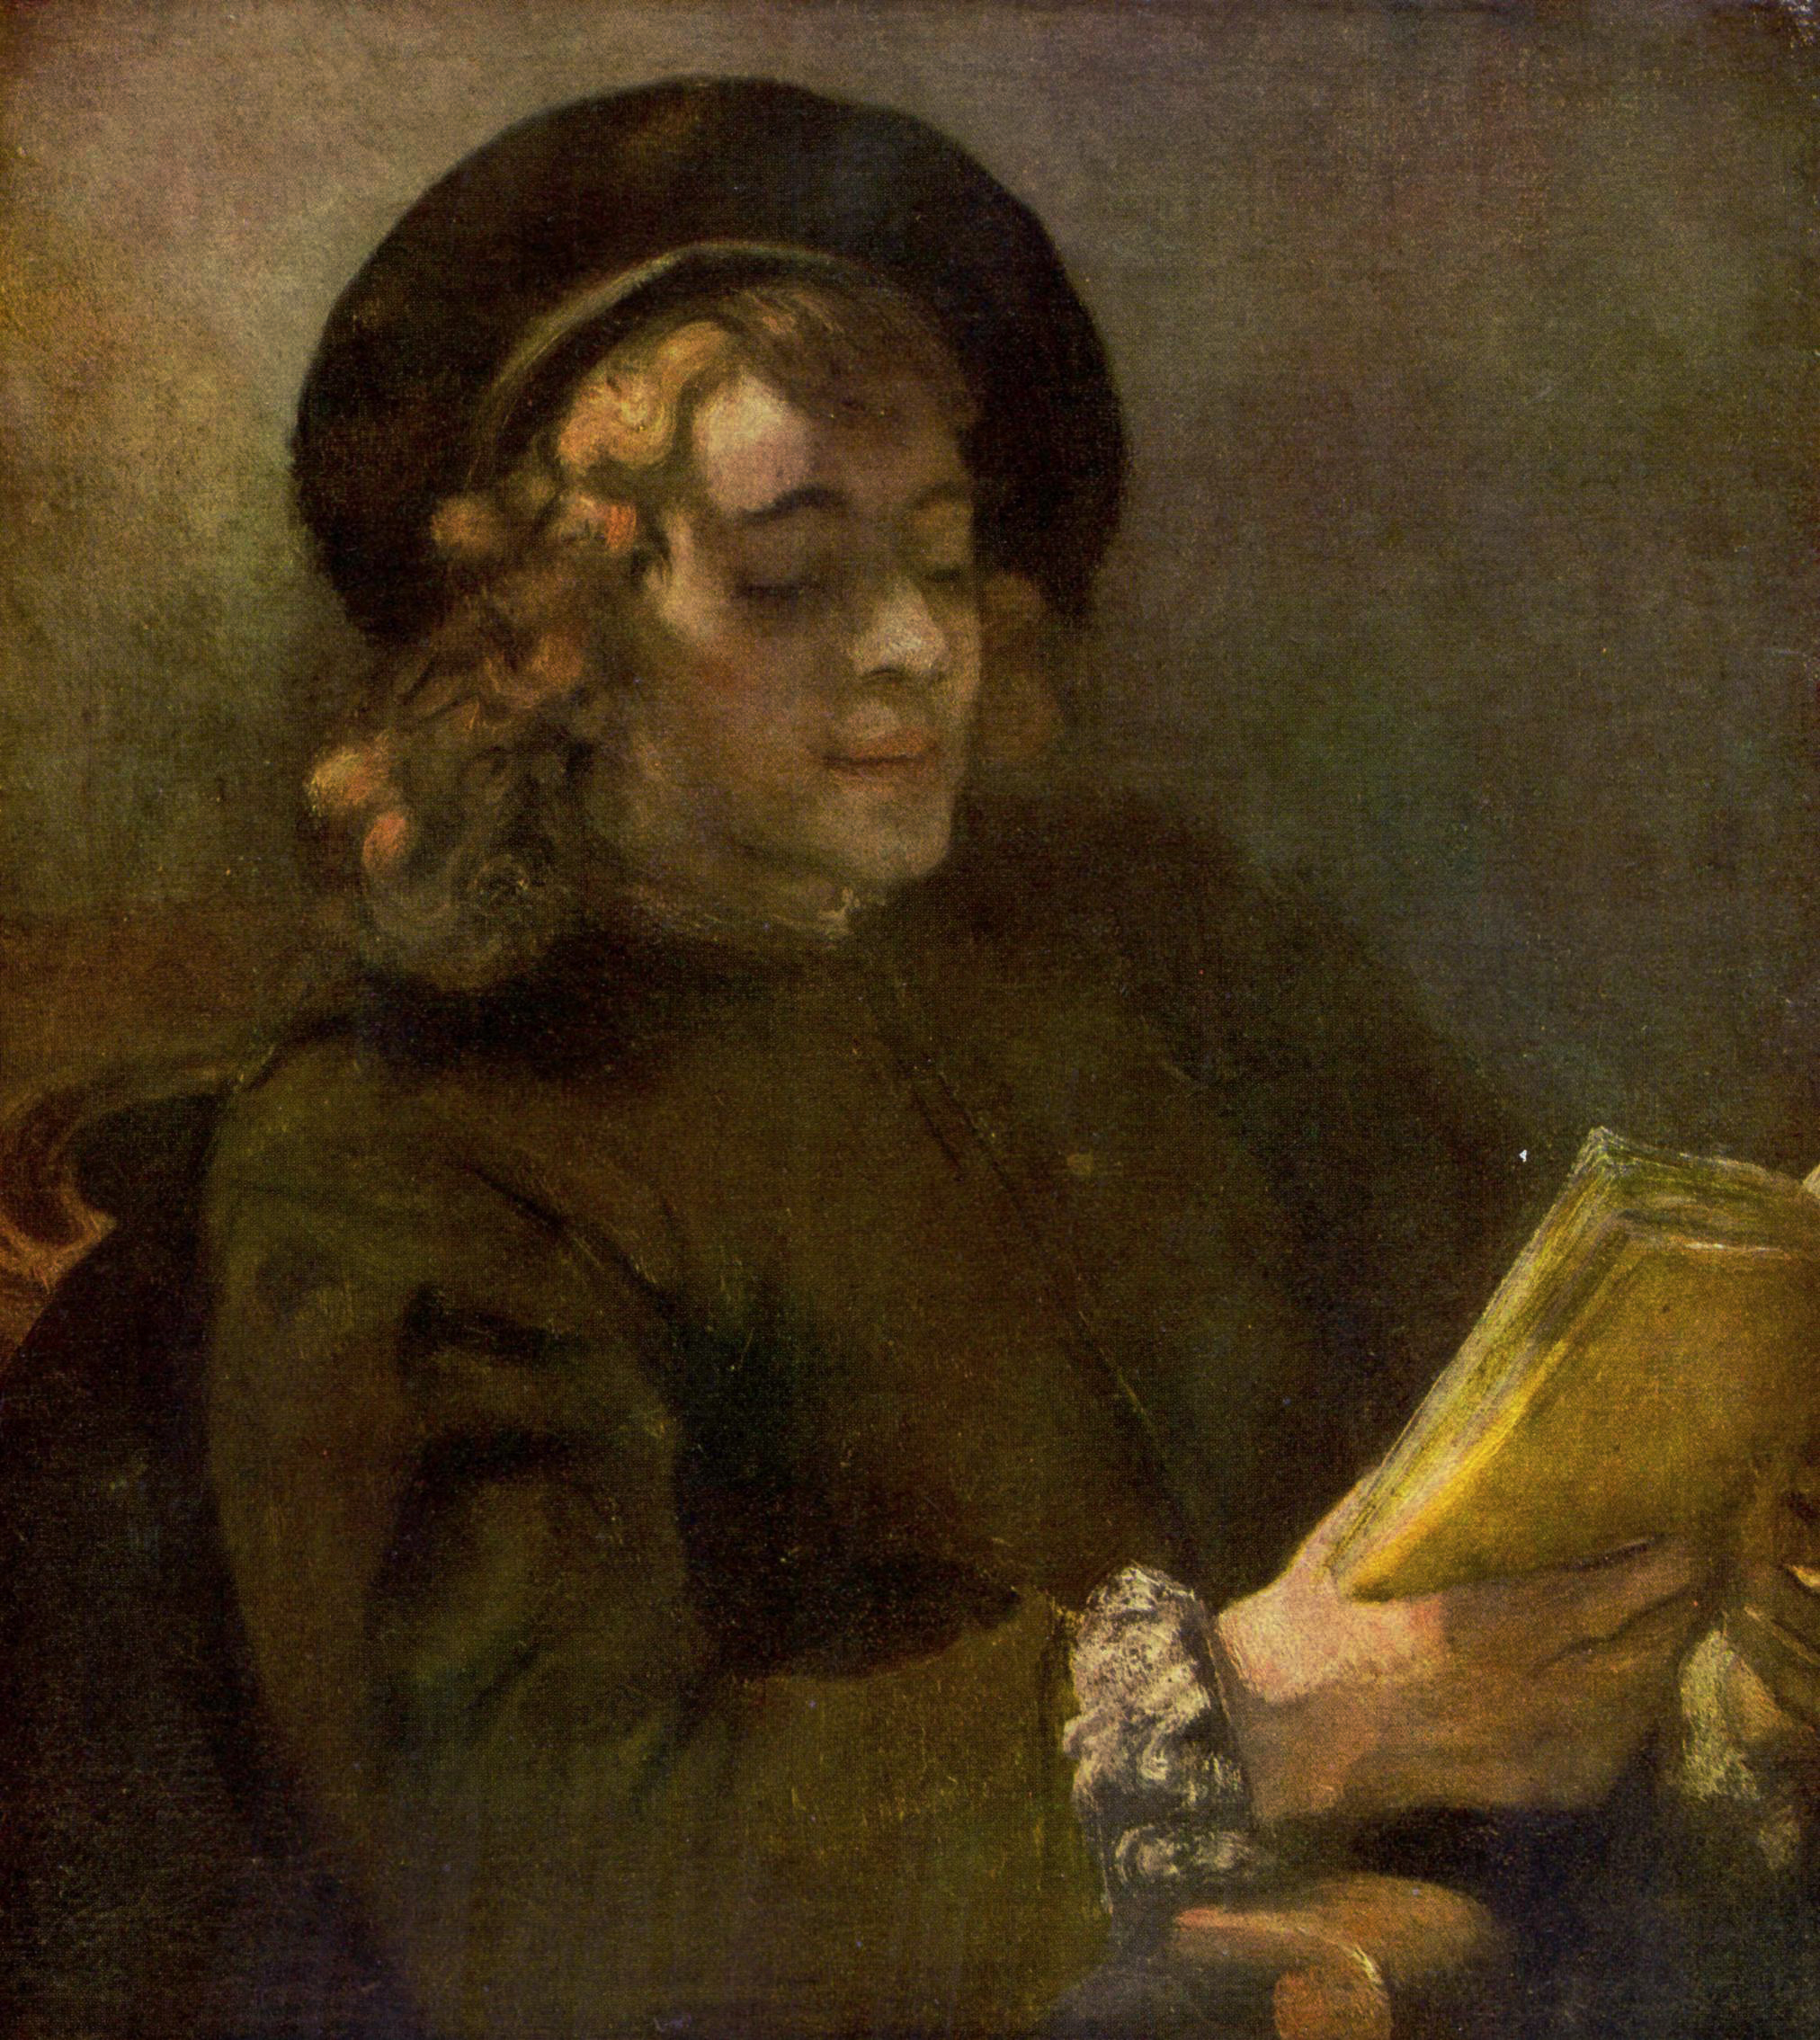 the life and works of rembrandt harmenszoon van rijn Chiaroscuro (english: / k i ˌ ɑː r rembrandt van rijn's early works from the s also adopted the single-candle light source the nocturnal candle-lit scene re.